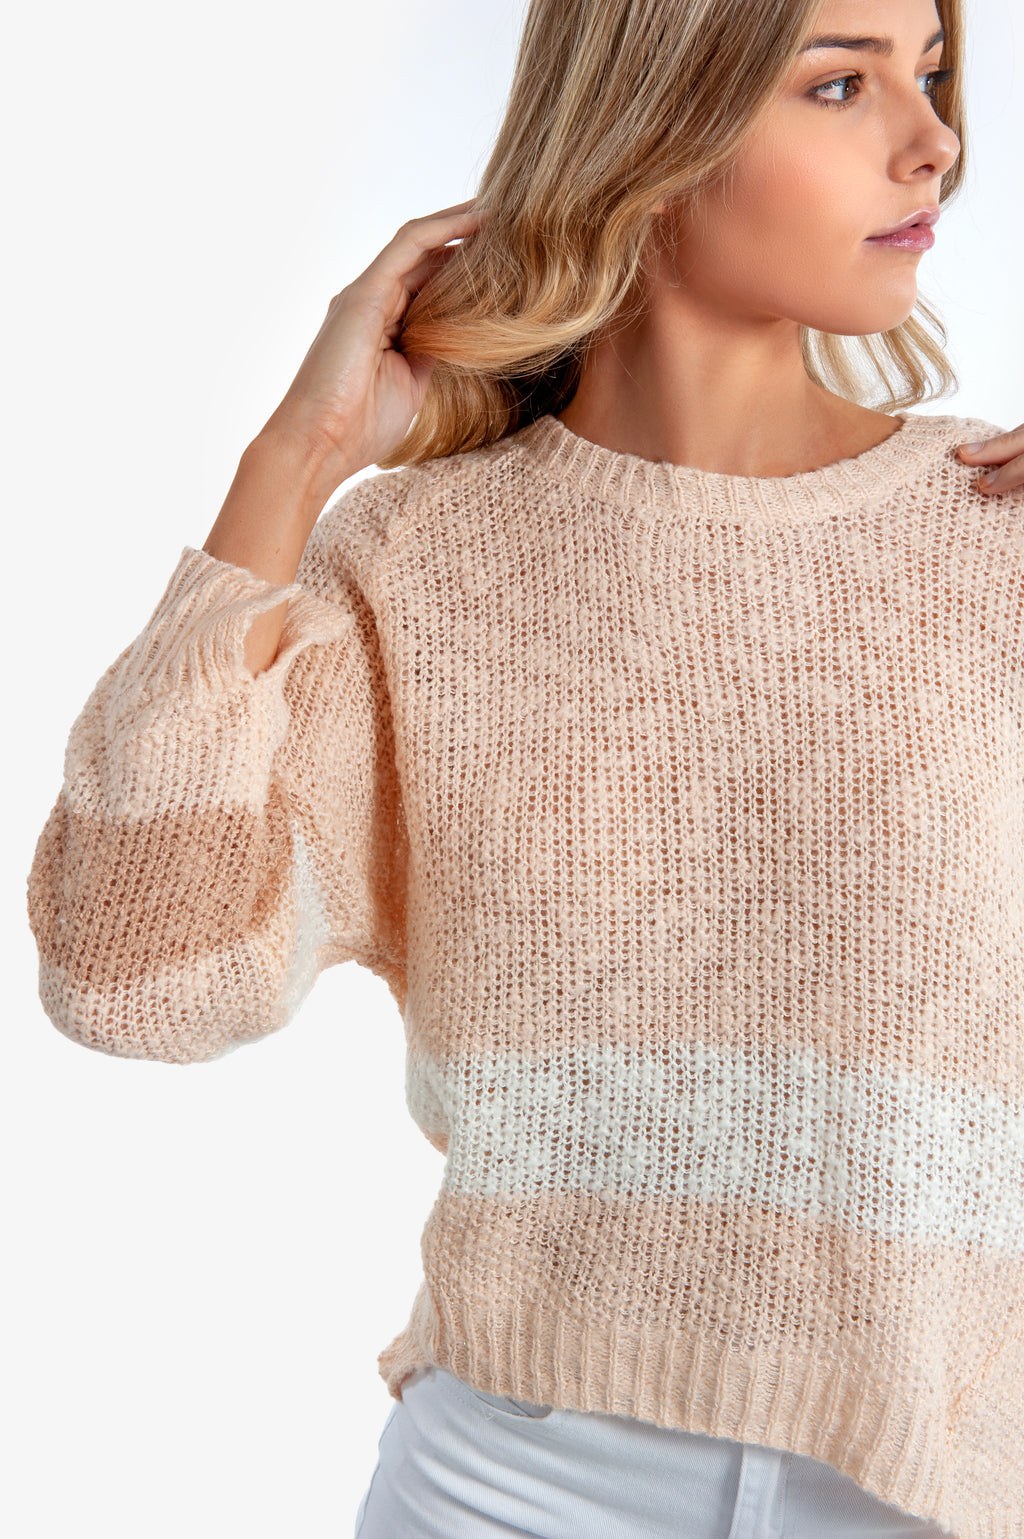 Oakley Knit Jumper - Islandlace